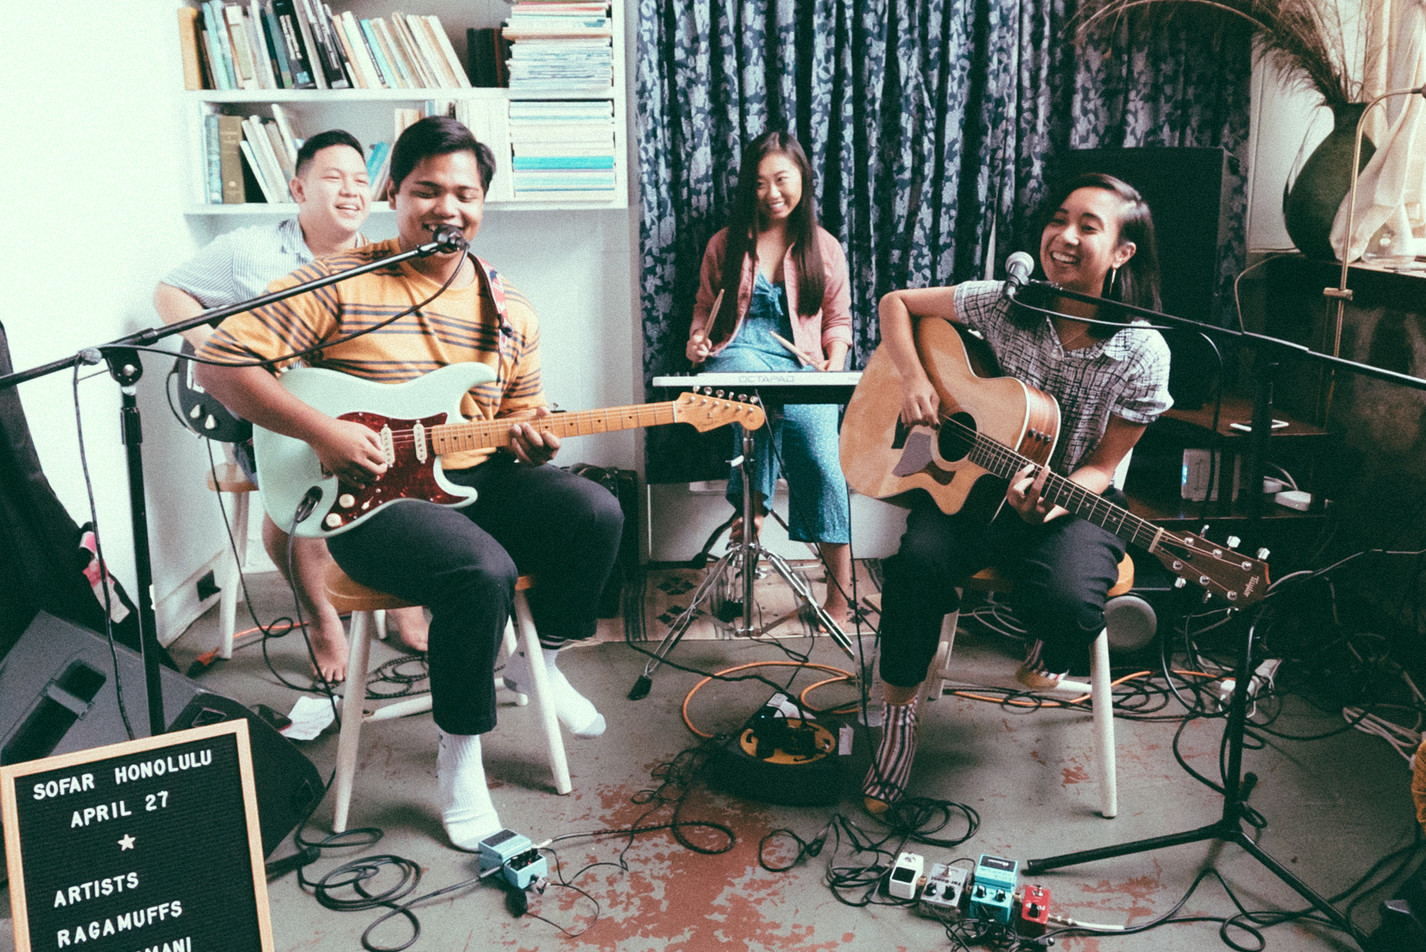 Sofar Sounds Honolulu